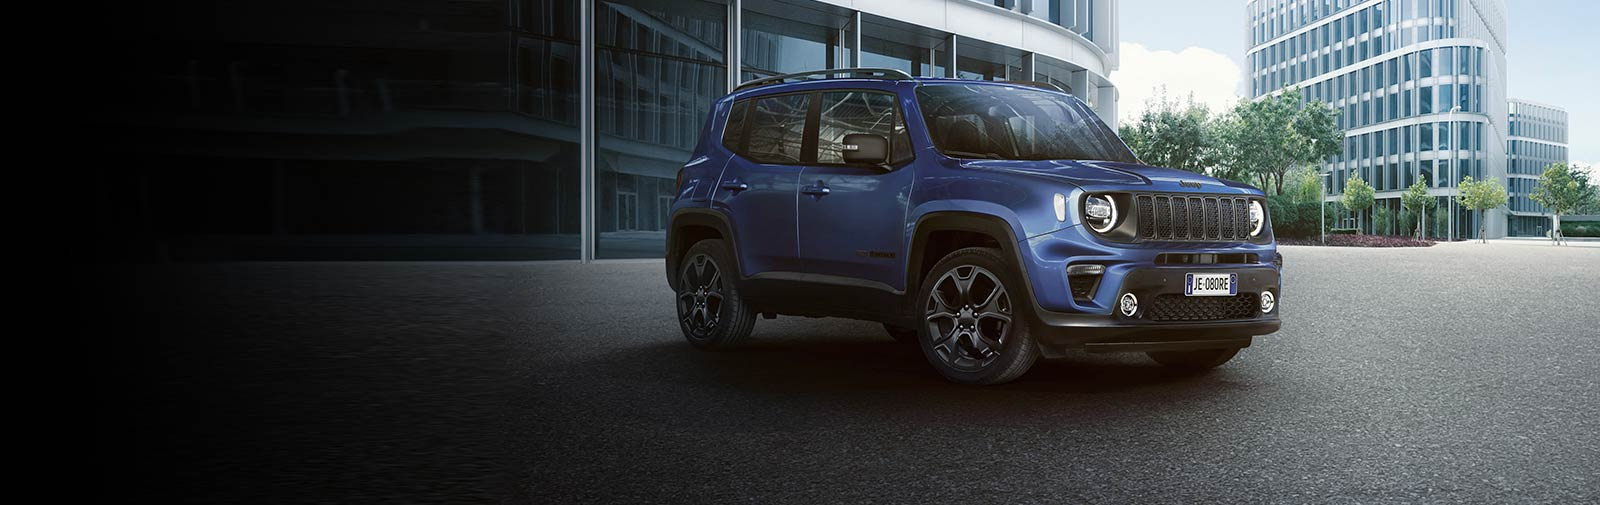 Jeep<sub>&reg;</sub> Renegade